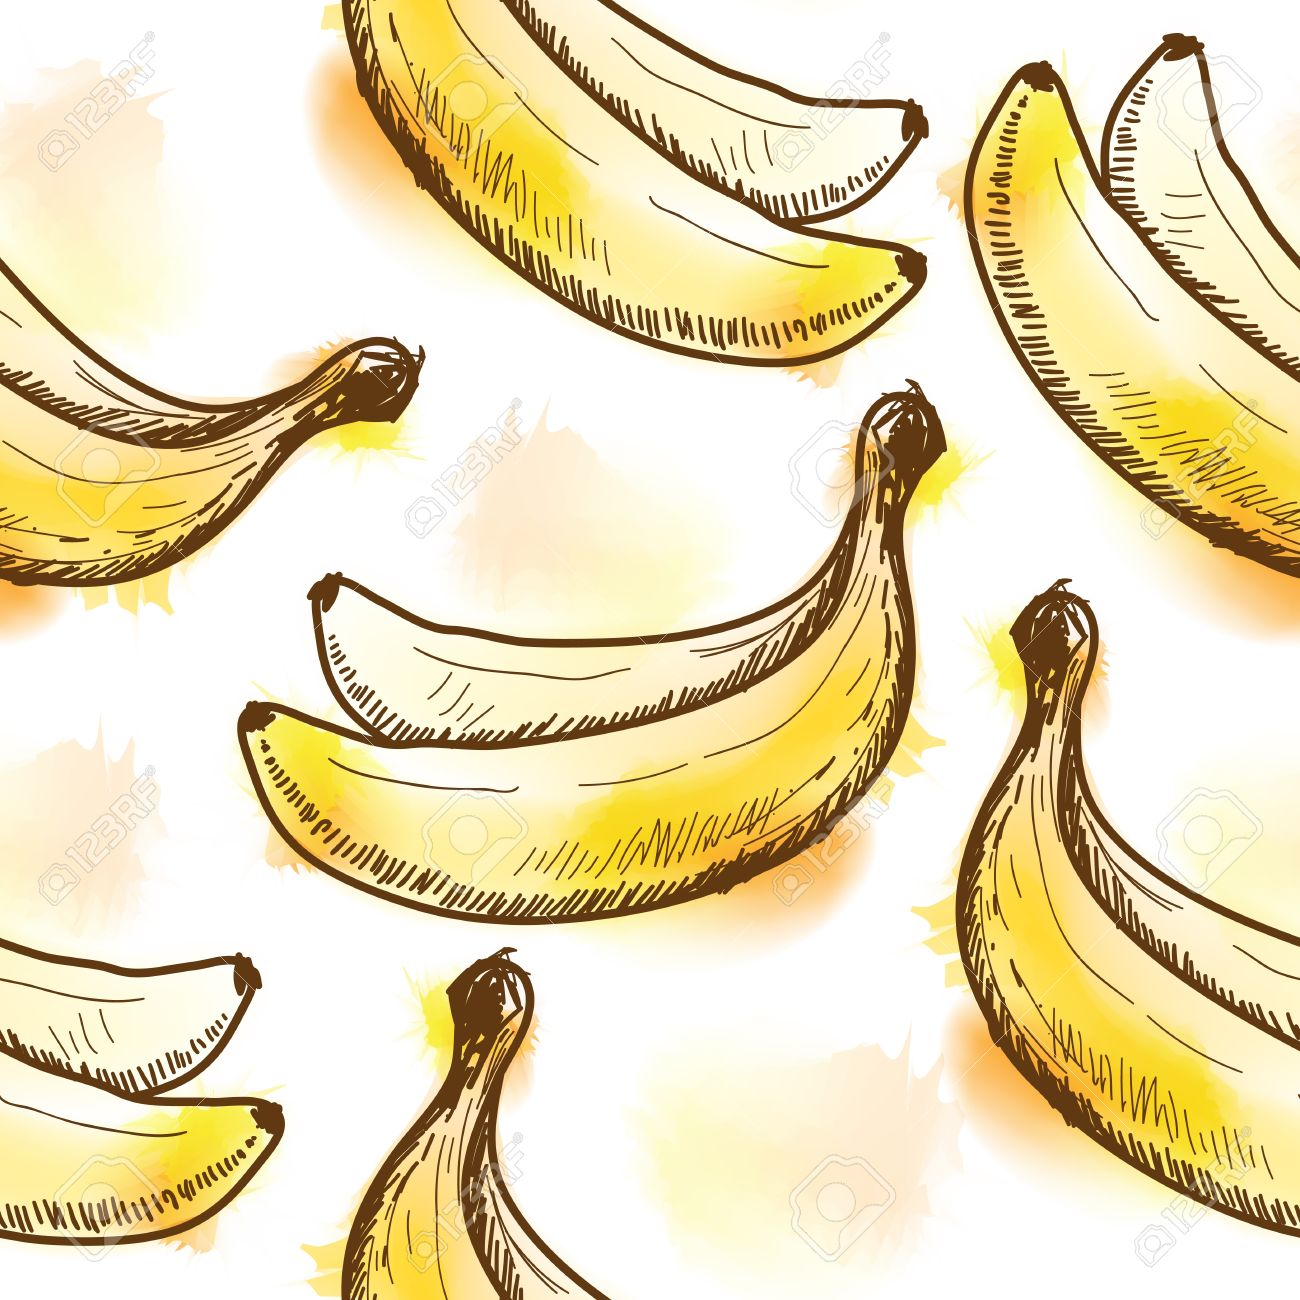 Seamless Pattern With Banana Painted In Watercolor Style Royalty.